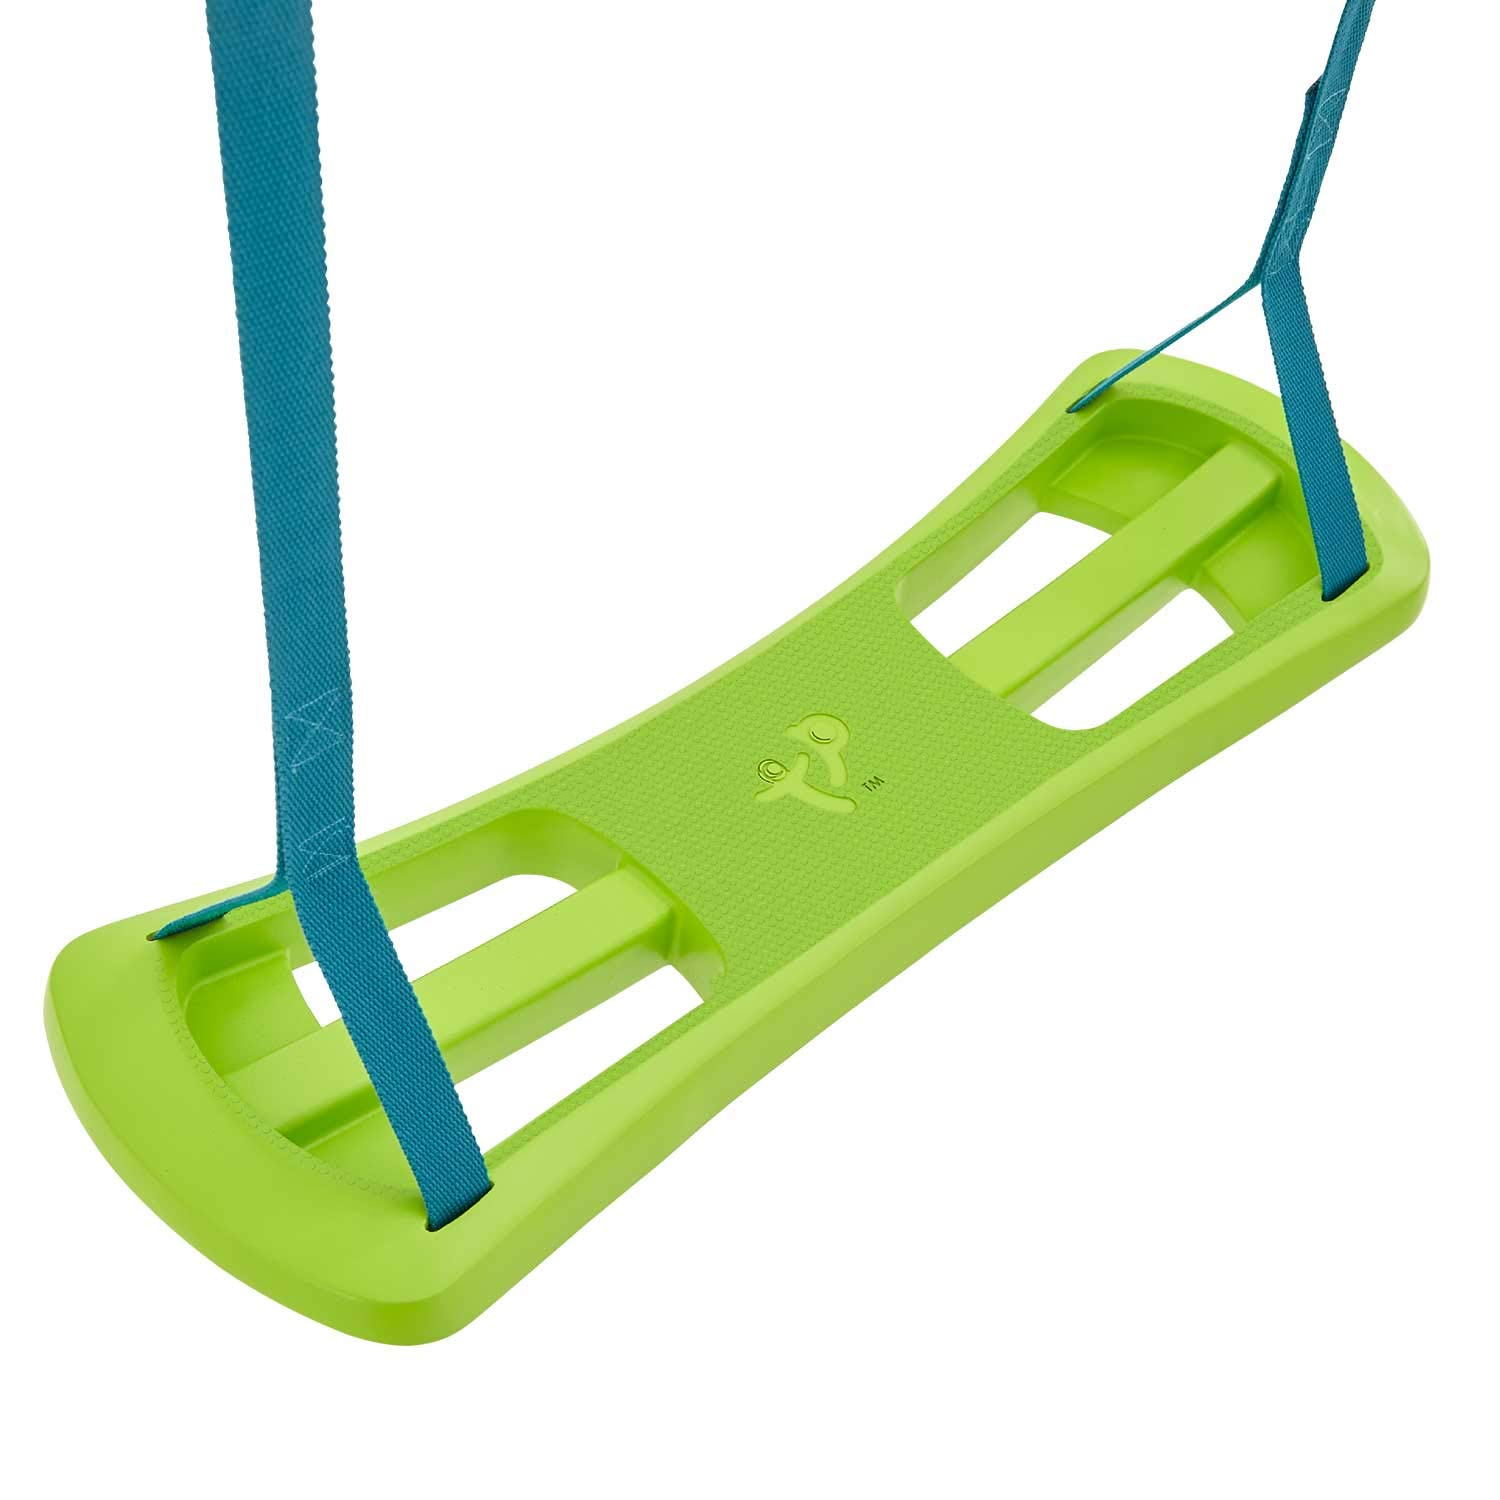 TP Toys 3 in 1 Swing Seat Green